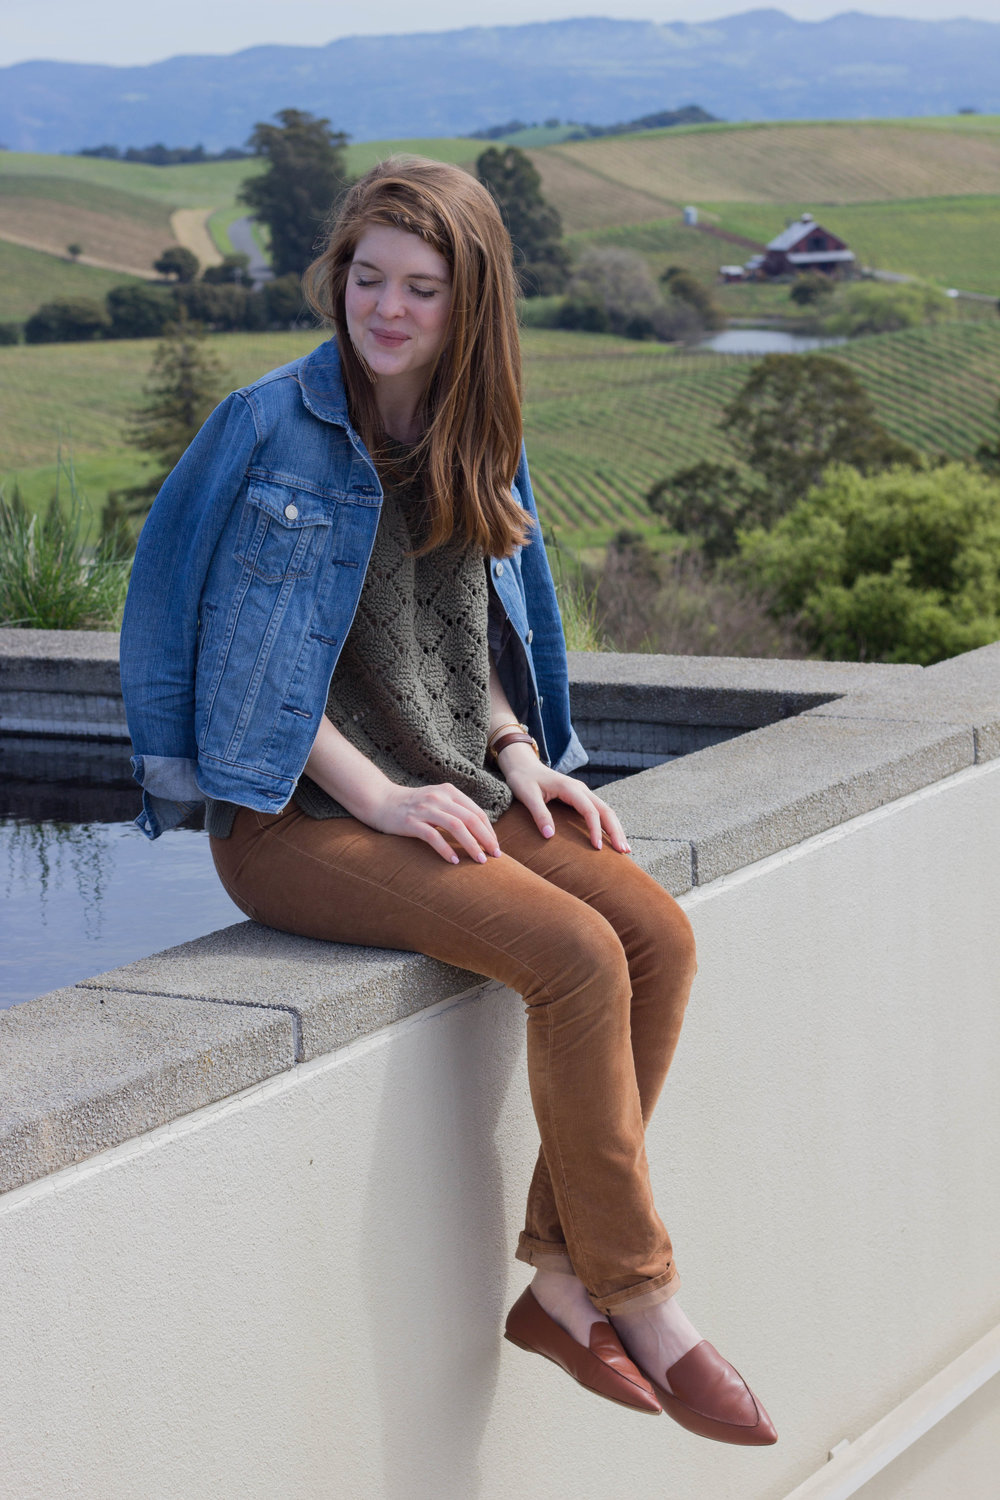 what to wear wine tasting, how to dress when going wine tasting, wine tasting tips, napa valley, wine tasting in napa valley, sonoma, artesa vineyards